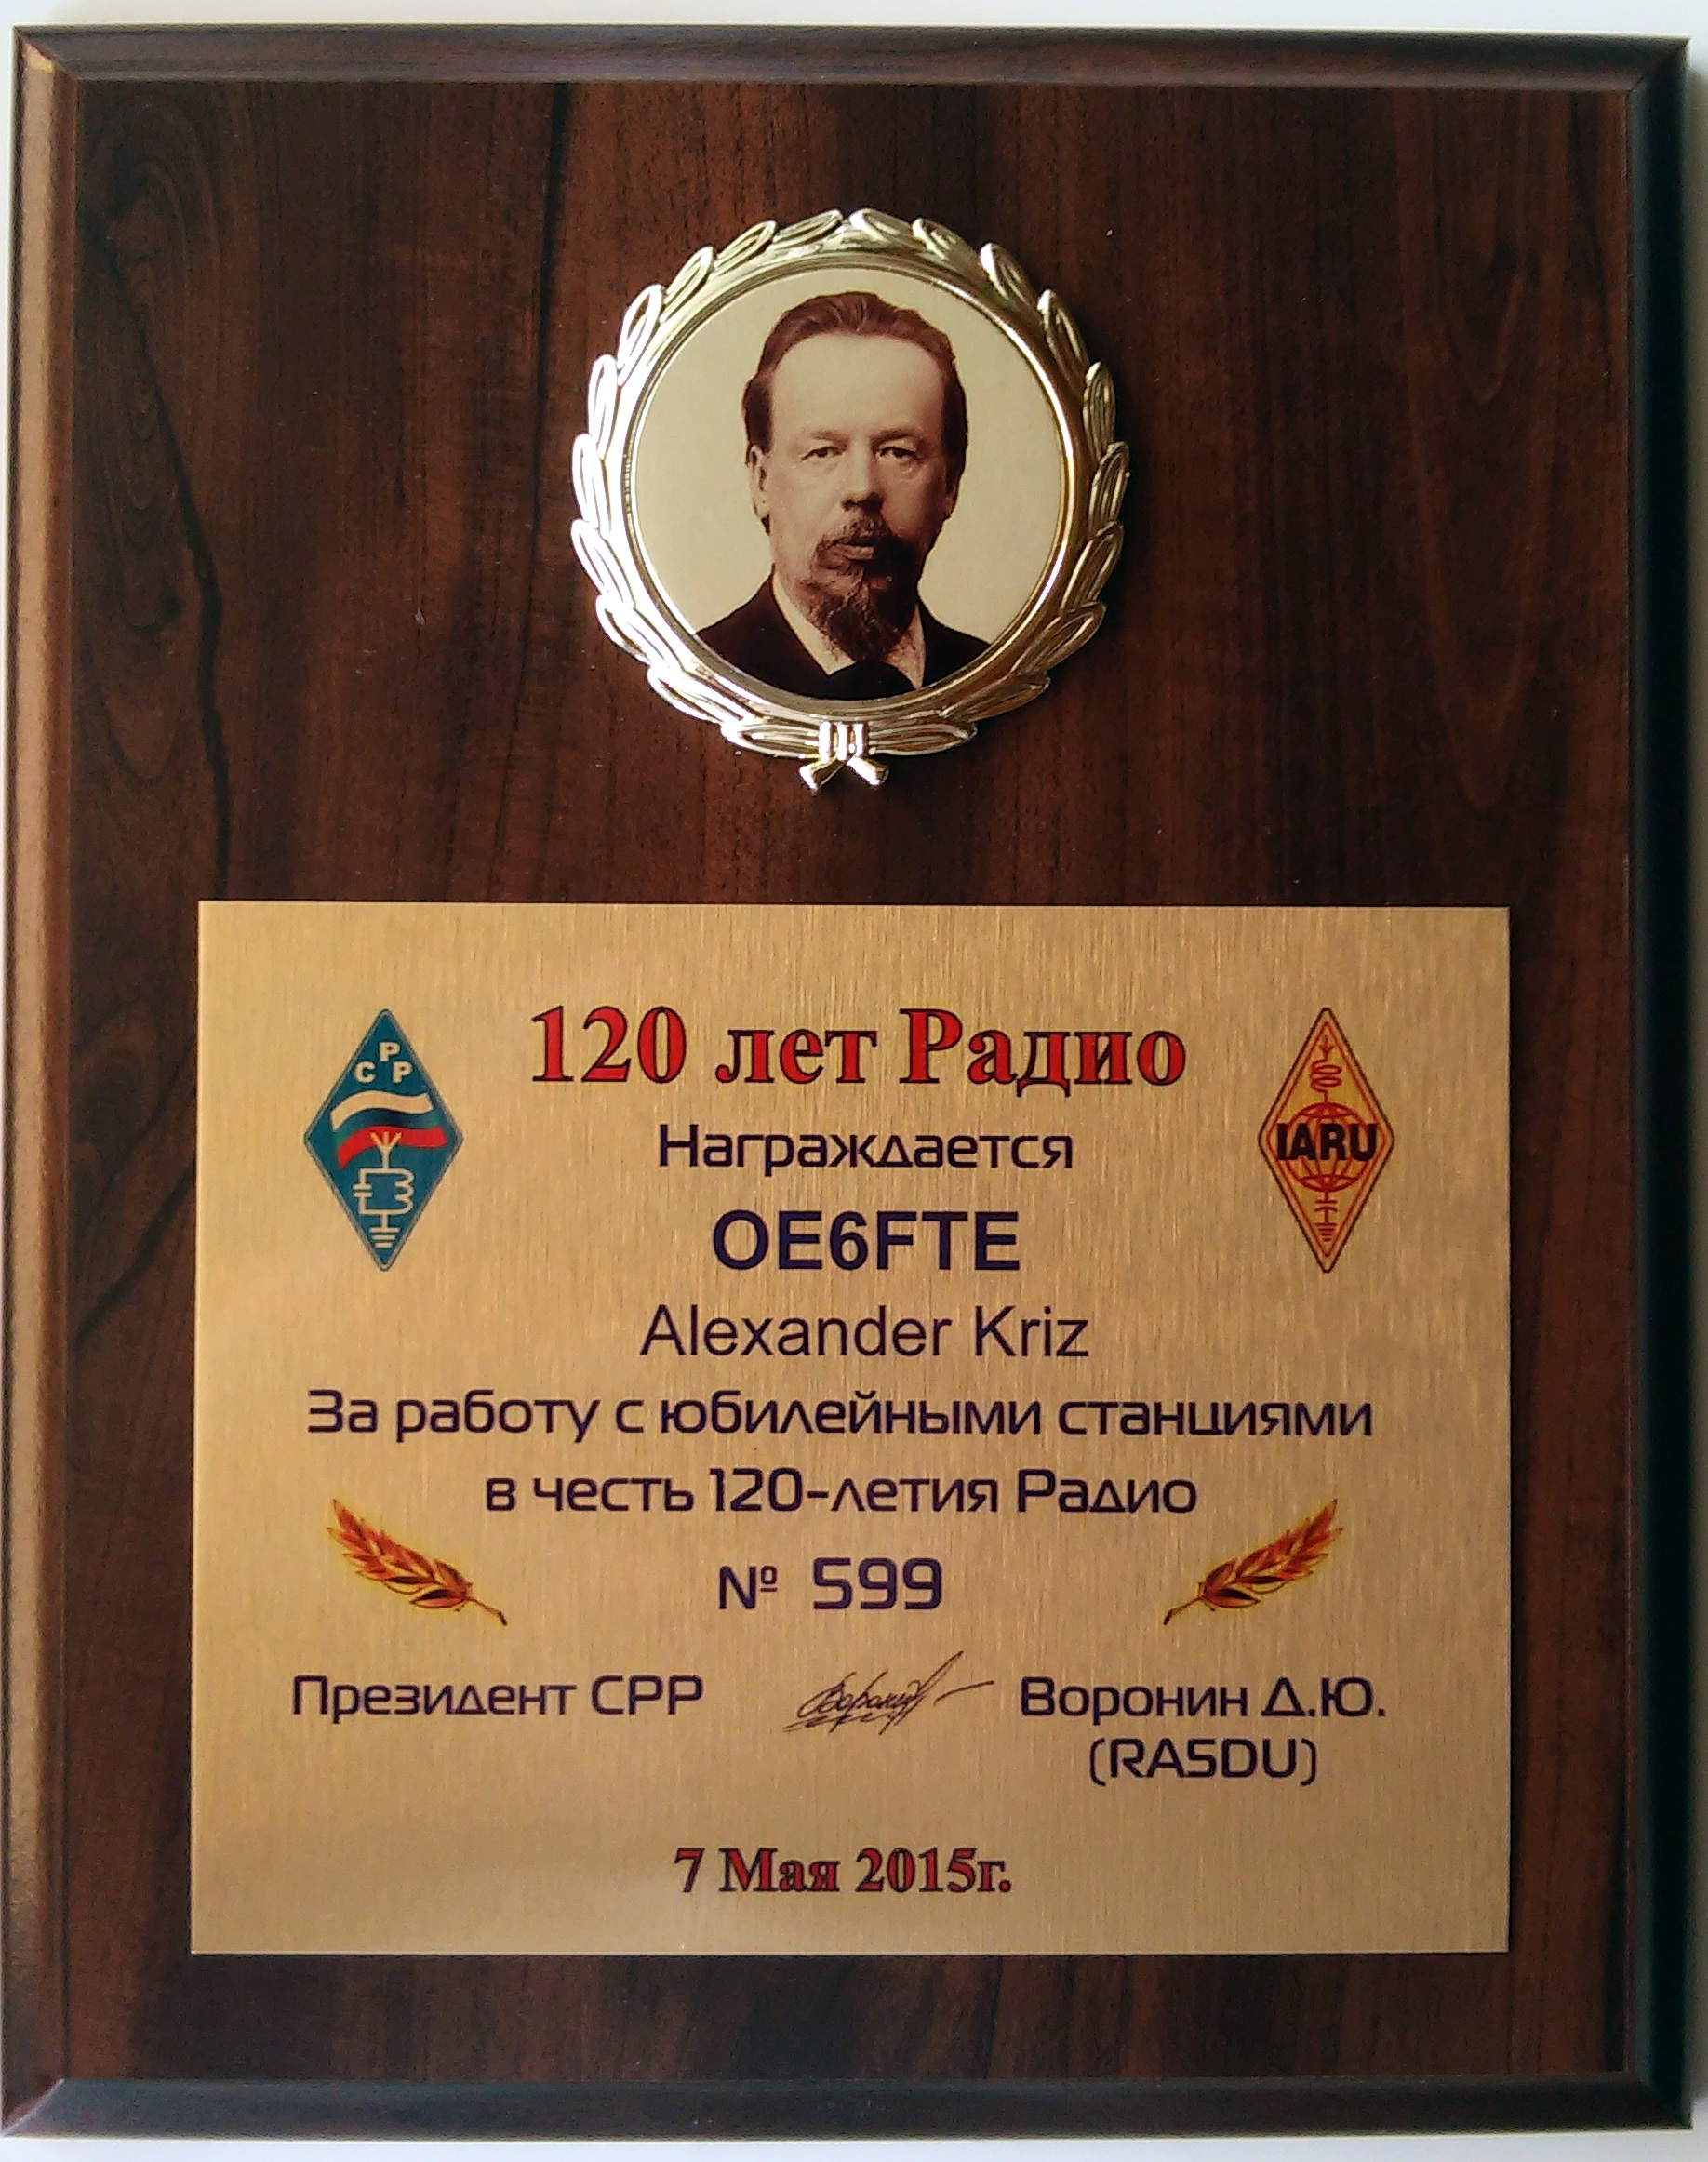 Award for working special event stations from Russia, Kazakhstan and Moldova. Event: 120 Years of Radio